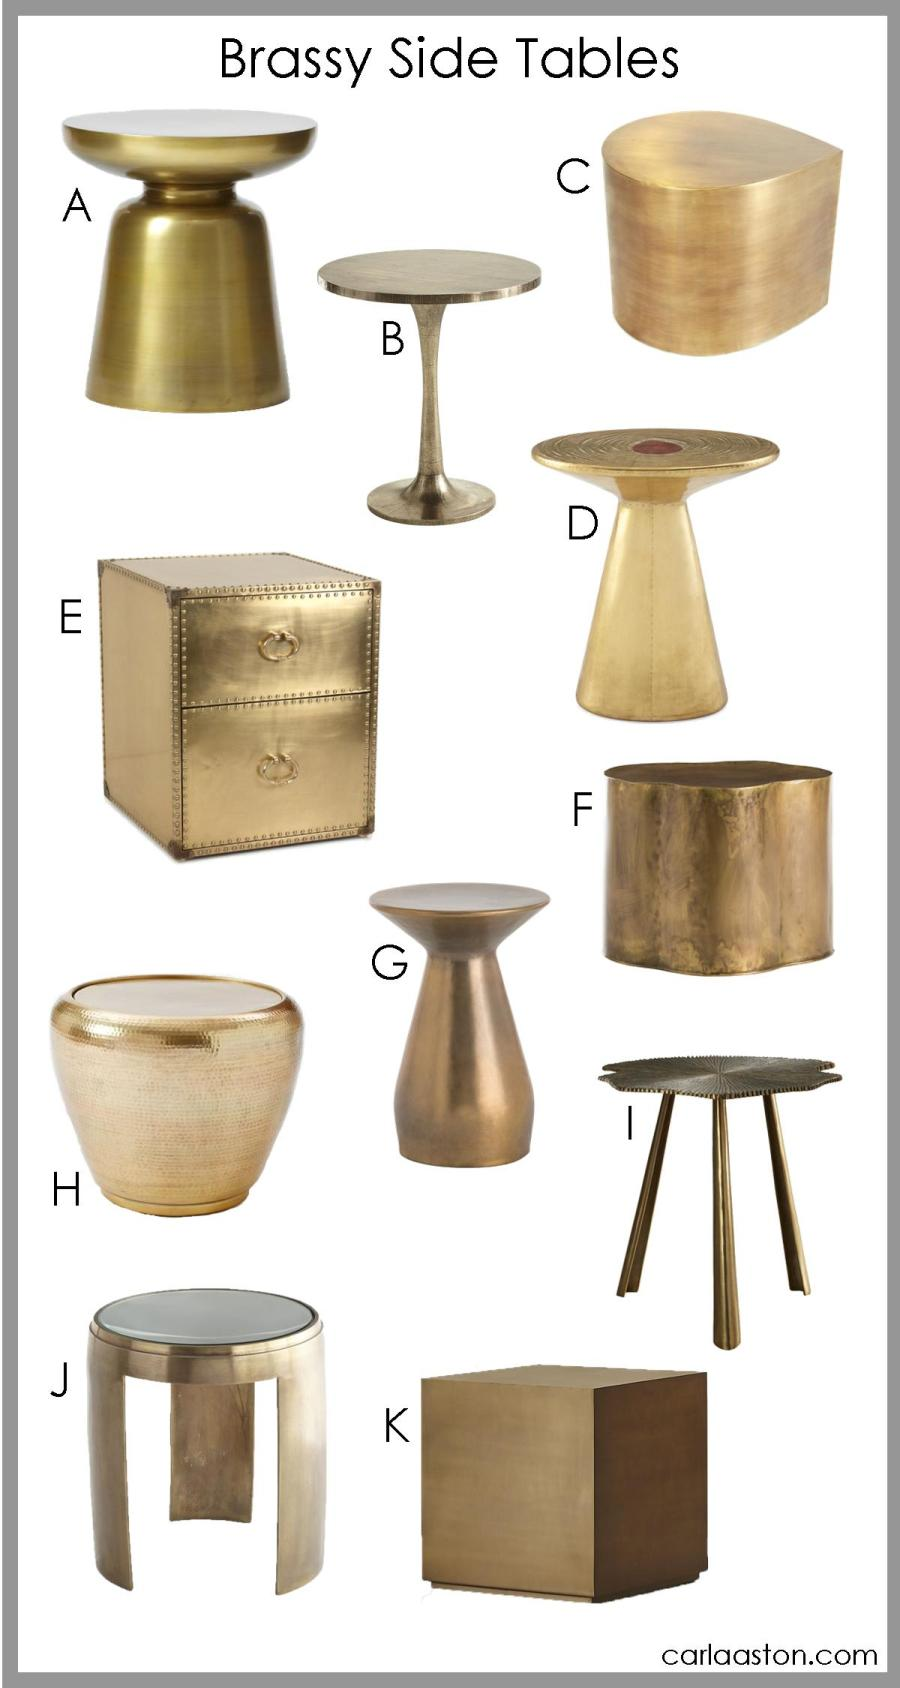 Brass side tables are a timeless, fun home decor accent in any room. #brass #brasshomedecor #sidetable